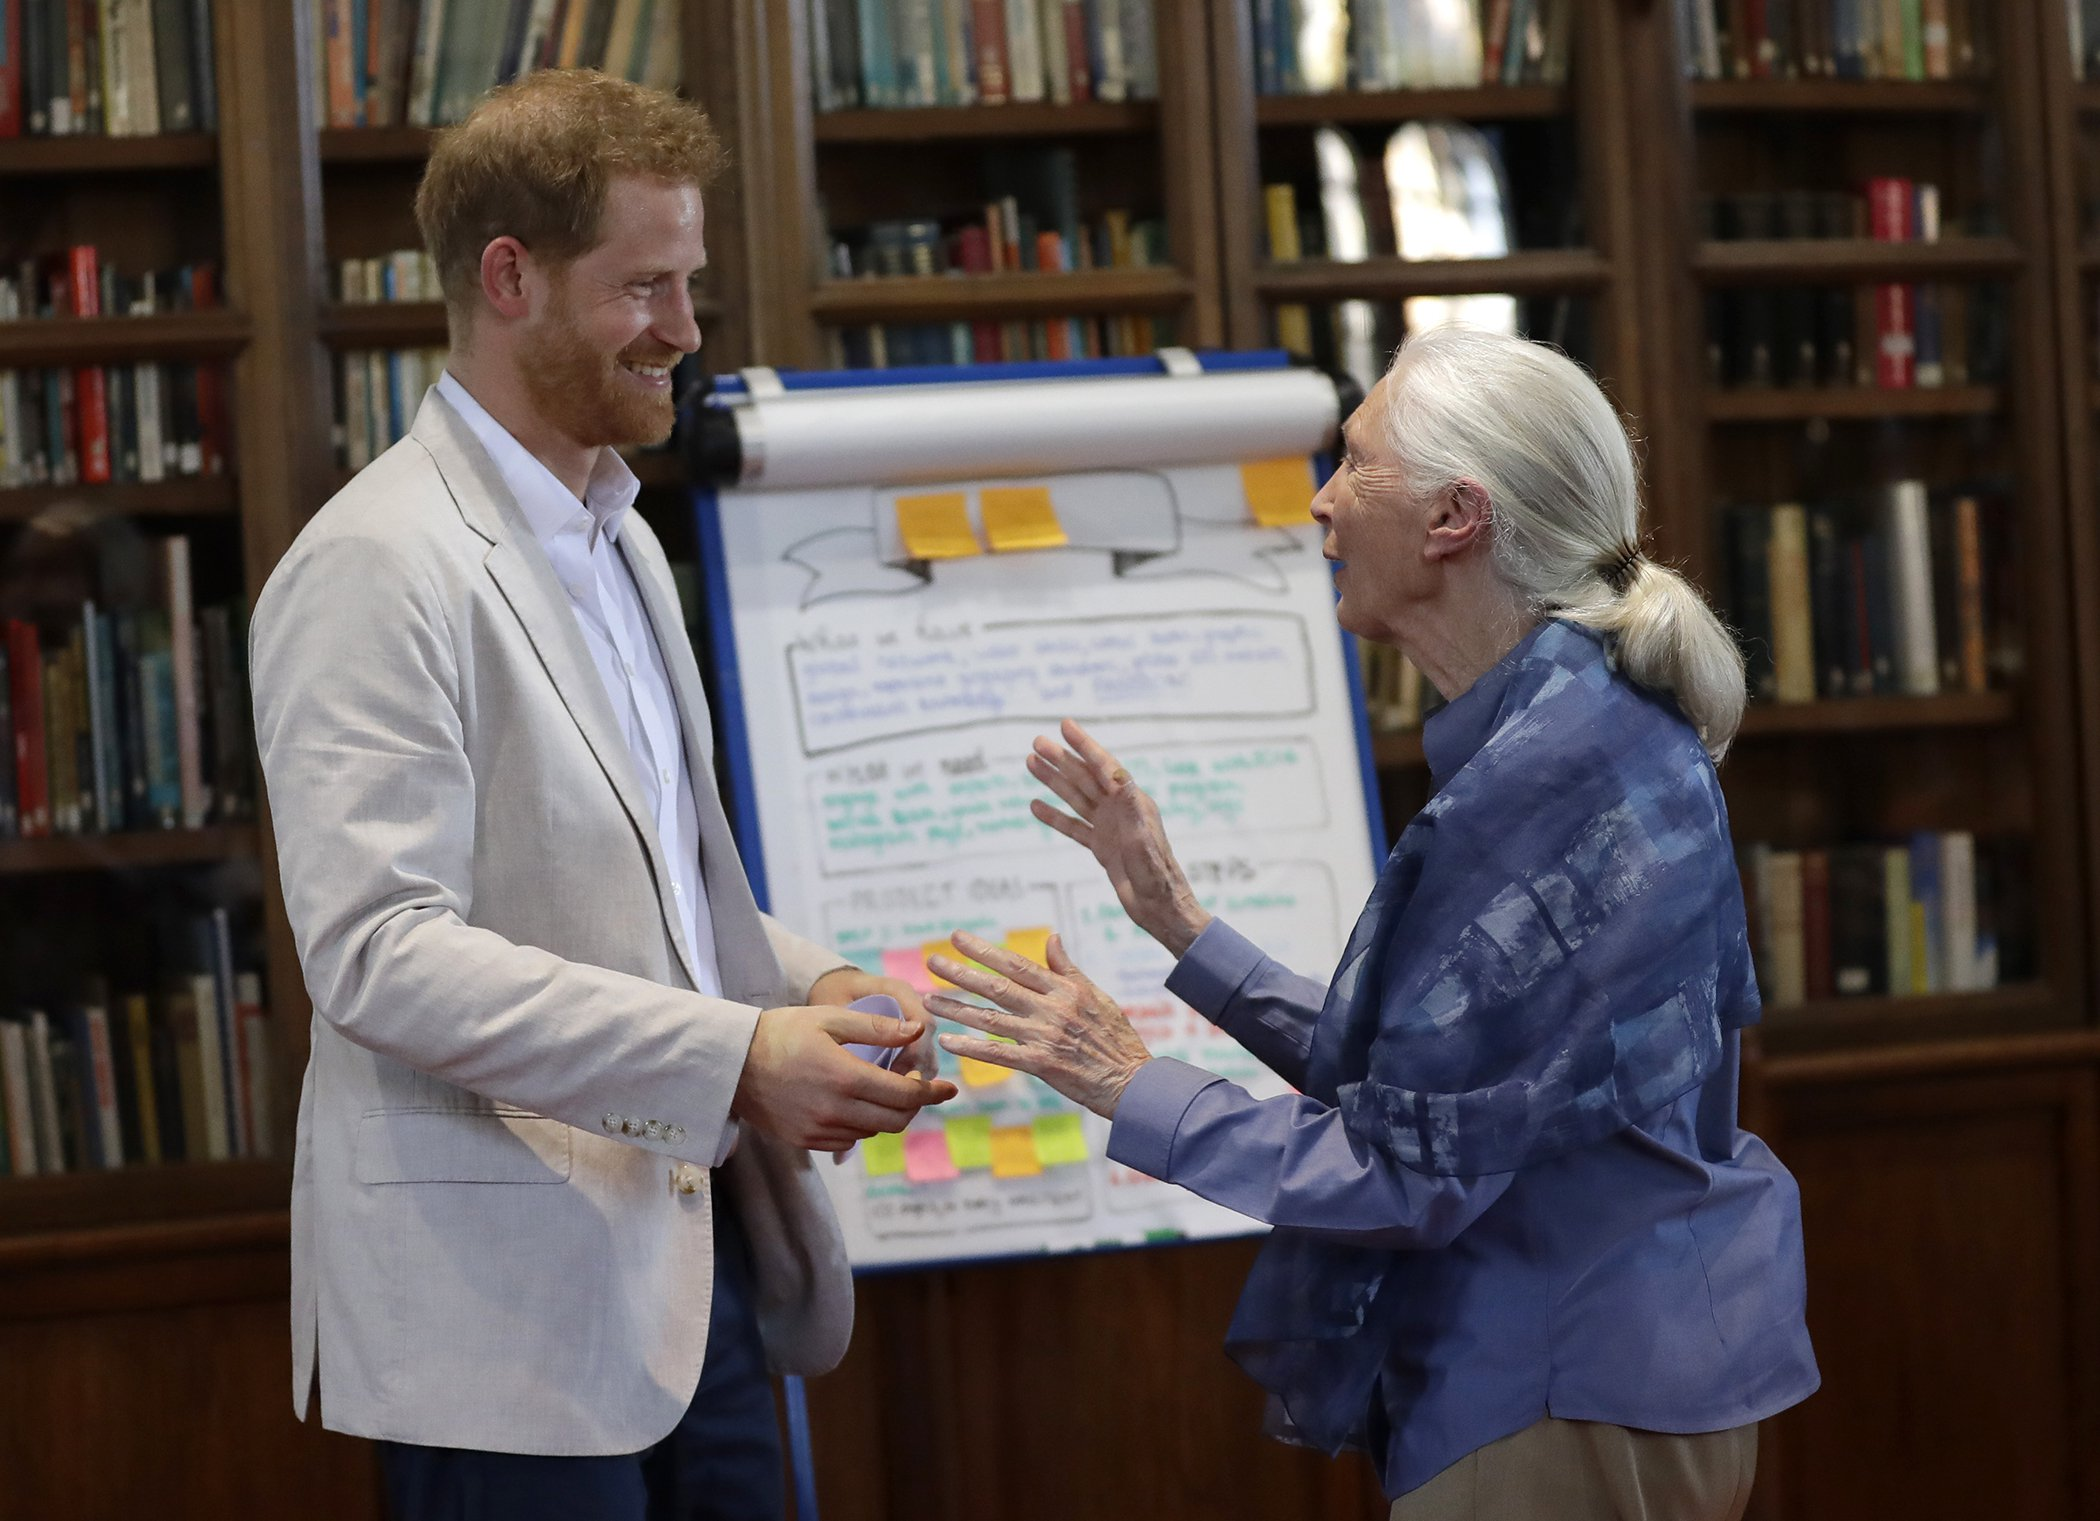 Prince-Harry-Jane-Goodall-Environment.jpg